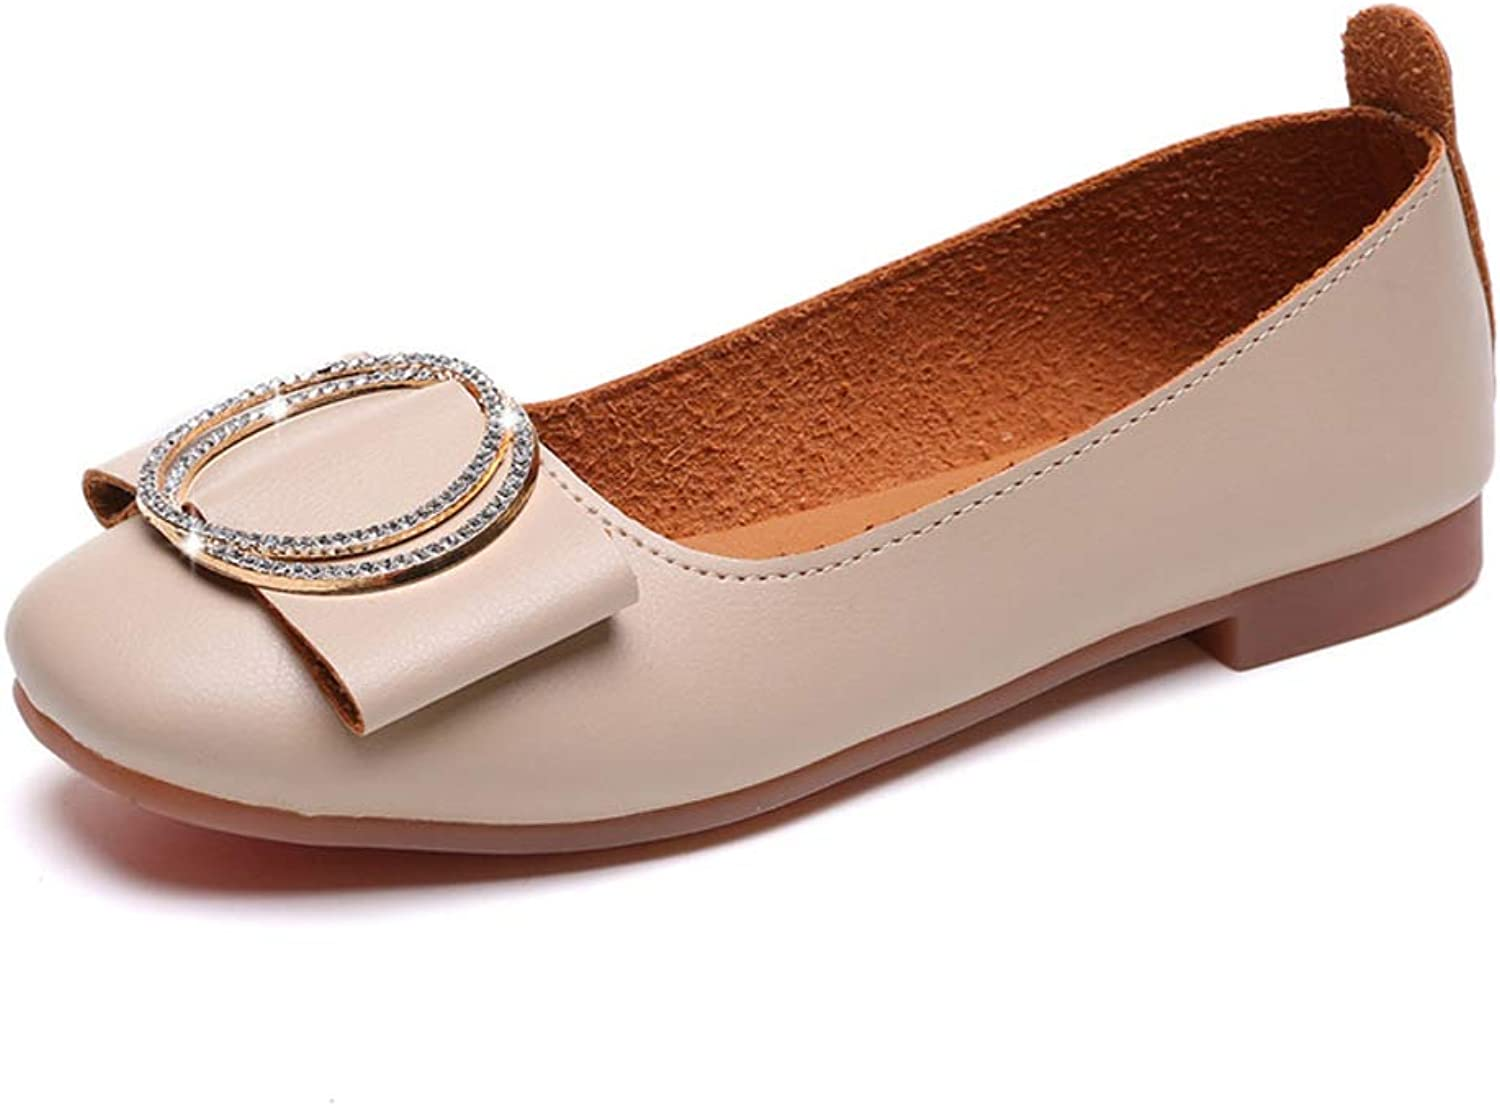 Flats Women's Casual shoes Spring and Autumn Metal Buckle Casual shoes